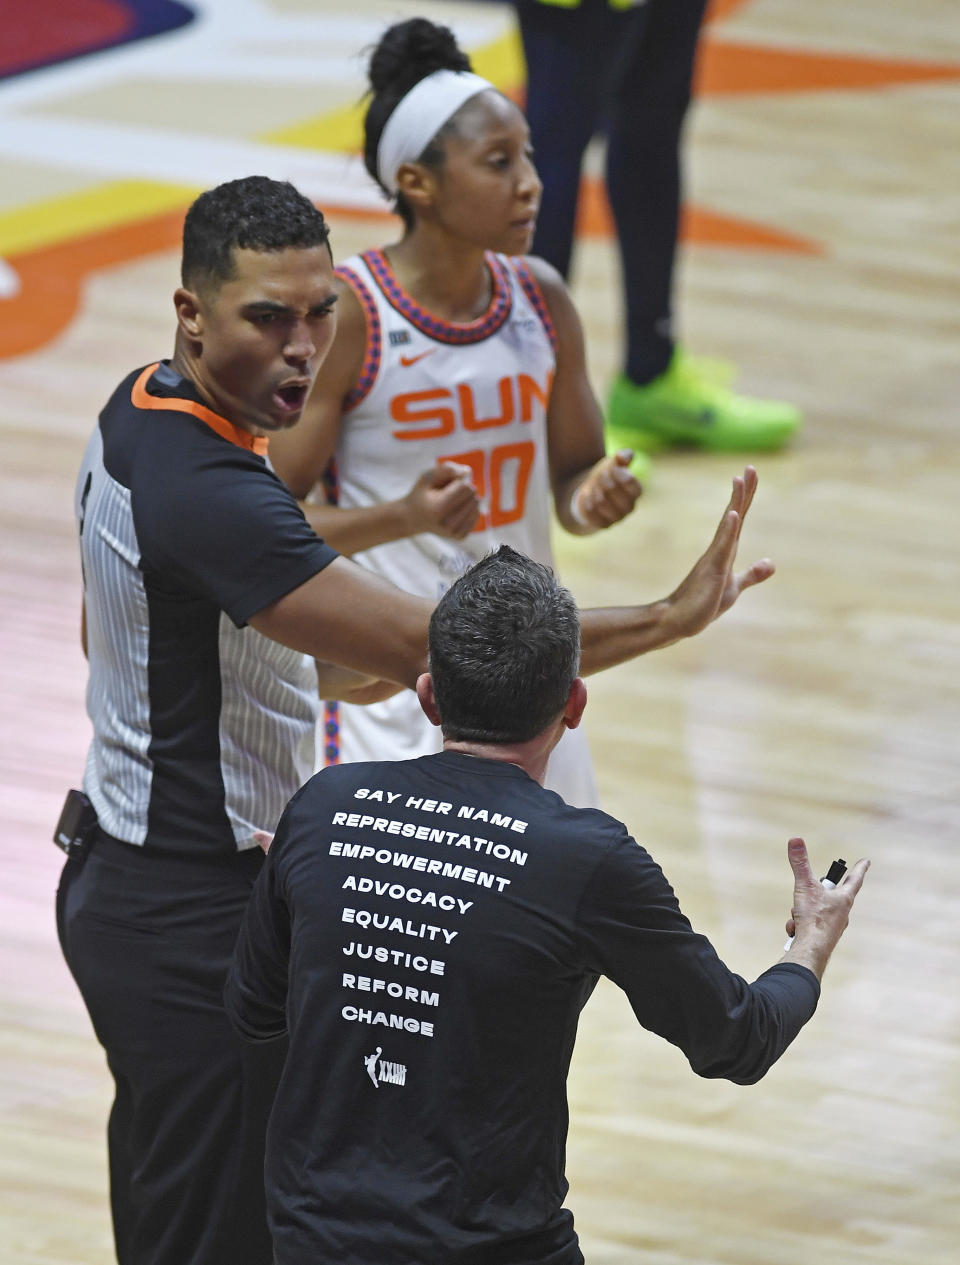 Connecticut Sun head coach Curt Miller argues with official John Conley during play against the Dallas Wing during a WNBA basketball game Tuesday, June 22, 2021 at Mohegan Sun Arena in Uncasville, Conn. (Sean D. Elliot/The Day via AP)